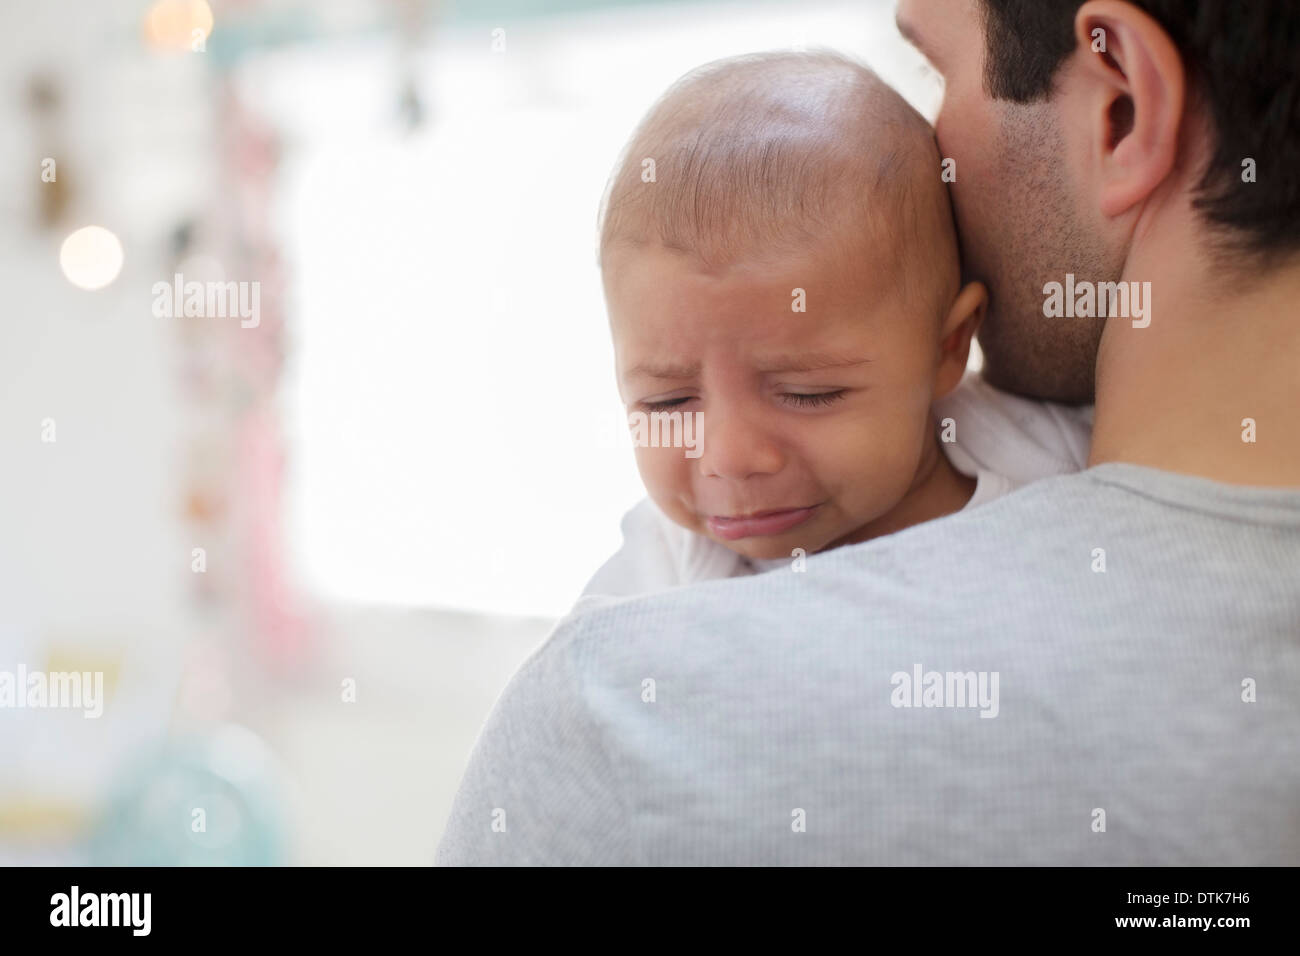 Father holding crying baby boy - Stock Image